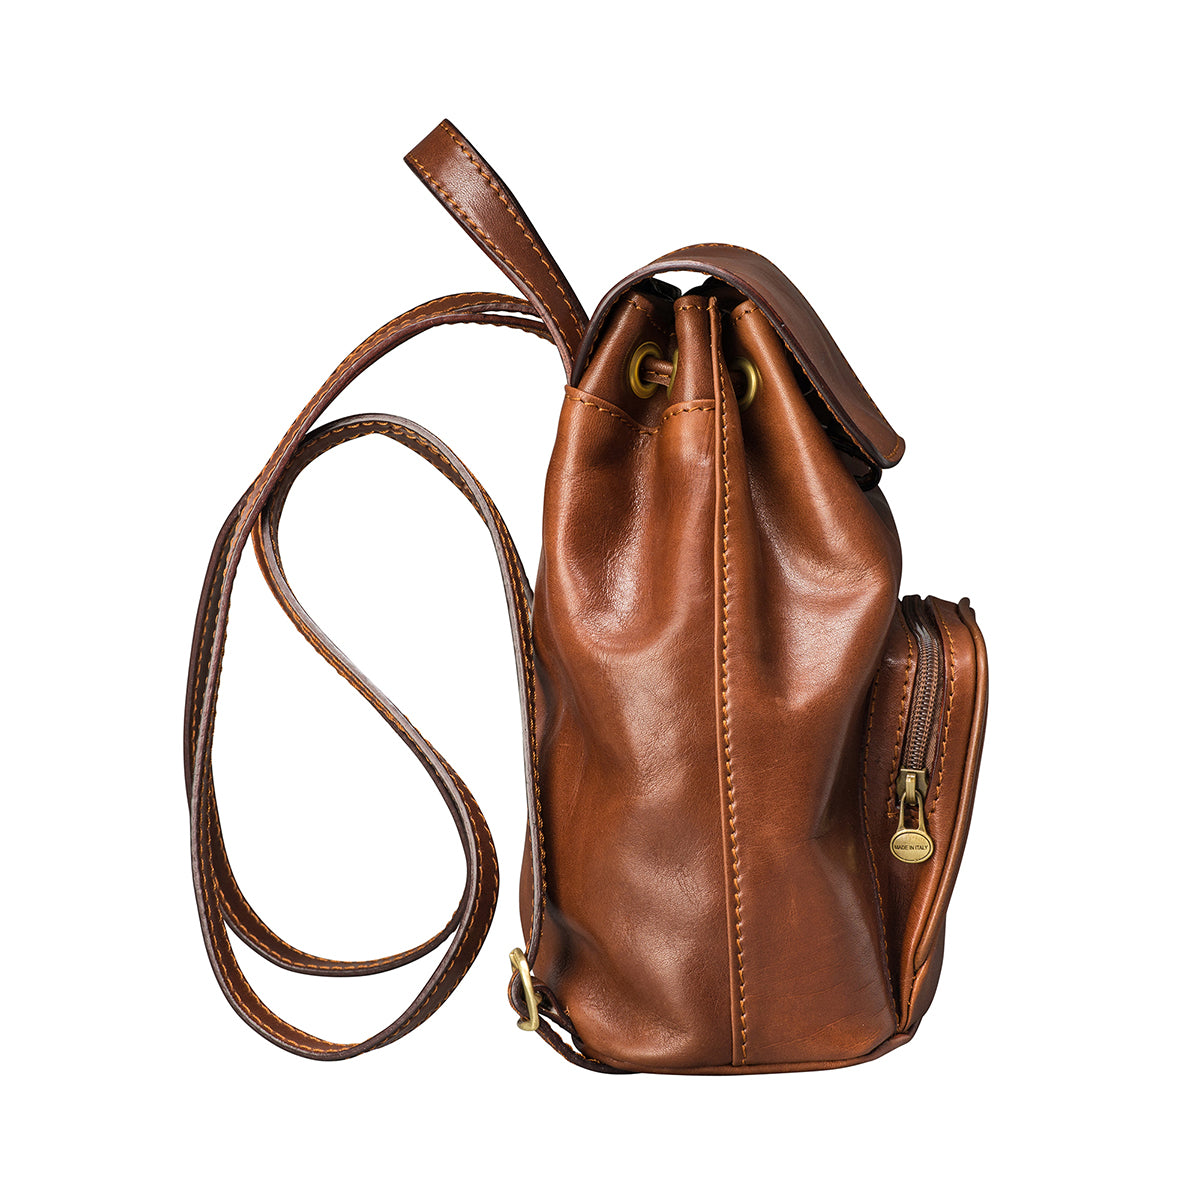 Image 3 of the 'Popolo' Compact Chestnut Veg-Tanned Leather Shoulder Bag